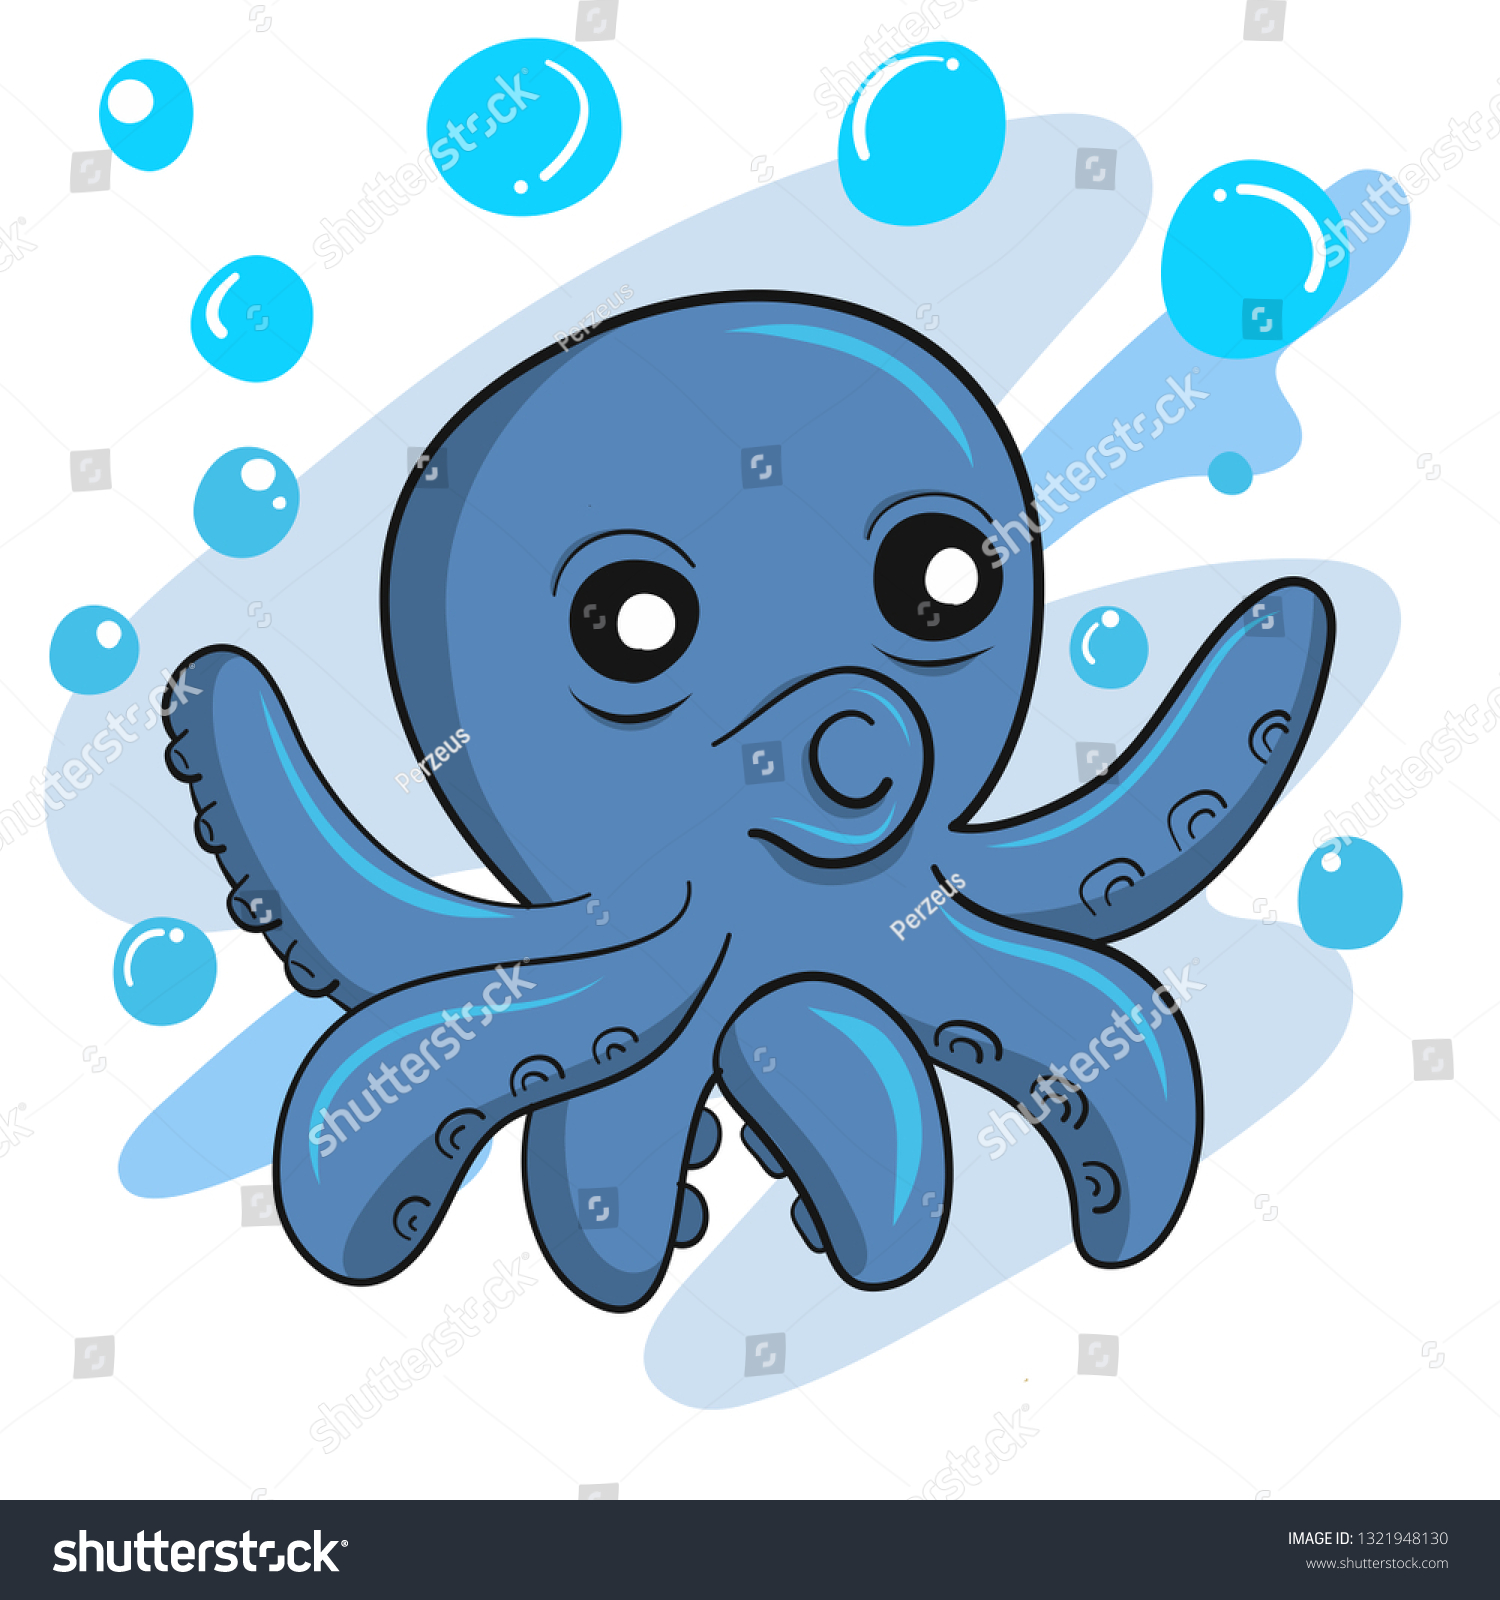 Blue octopus with glasses Royalty Free Vector Image